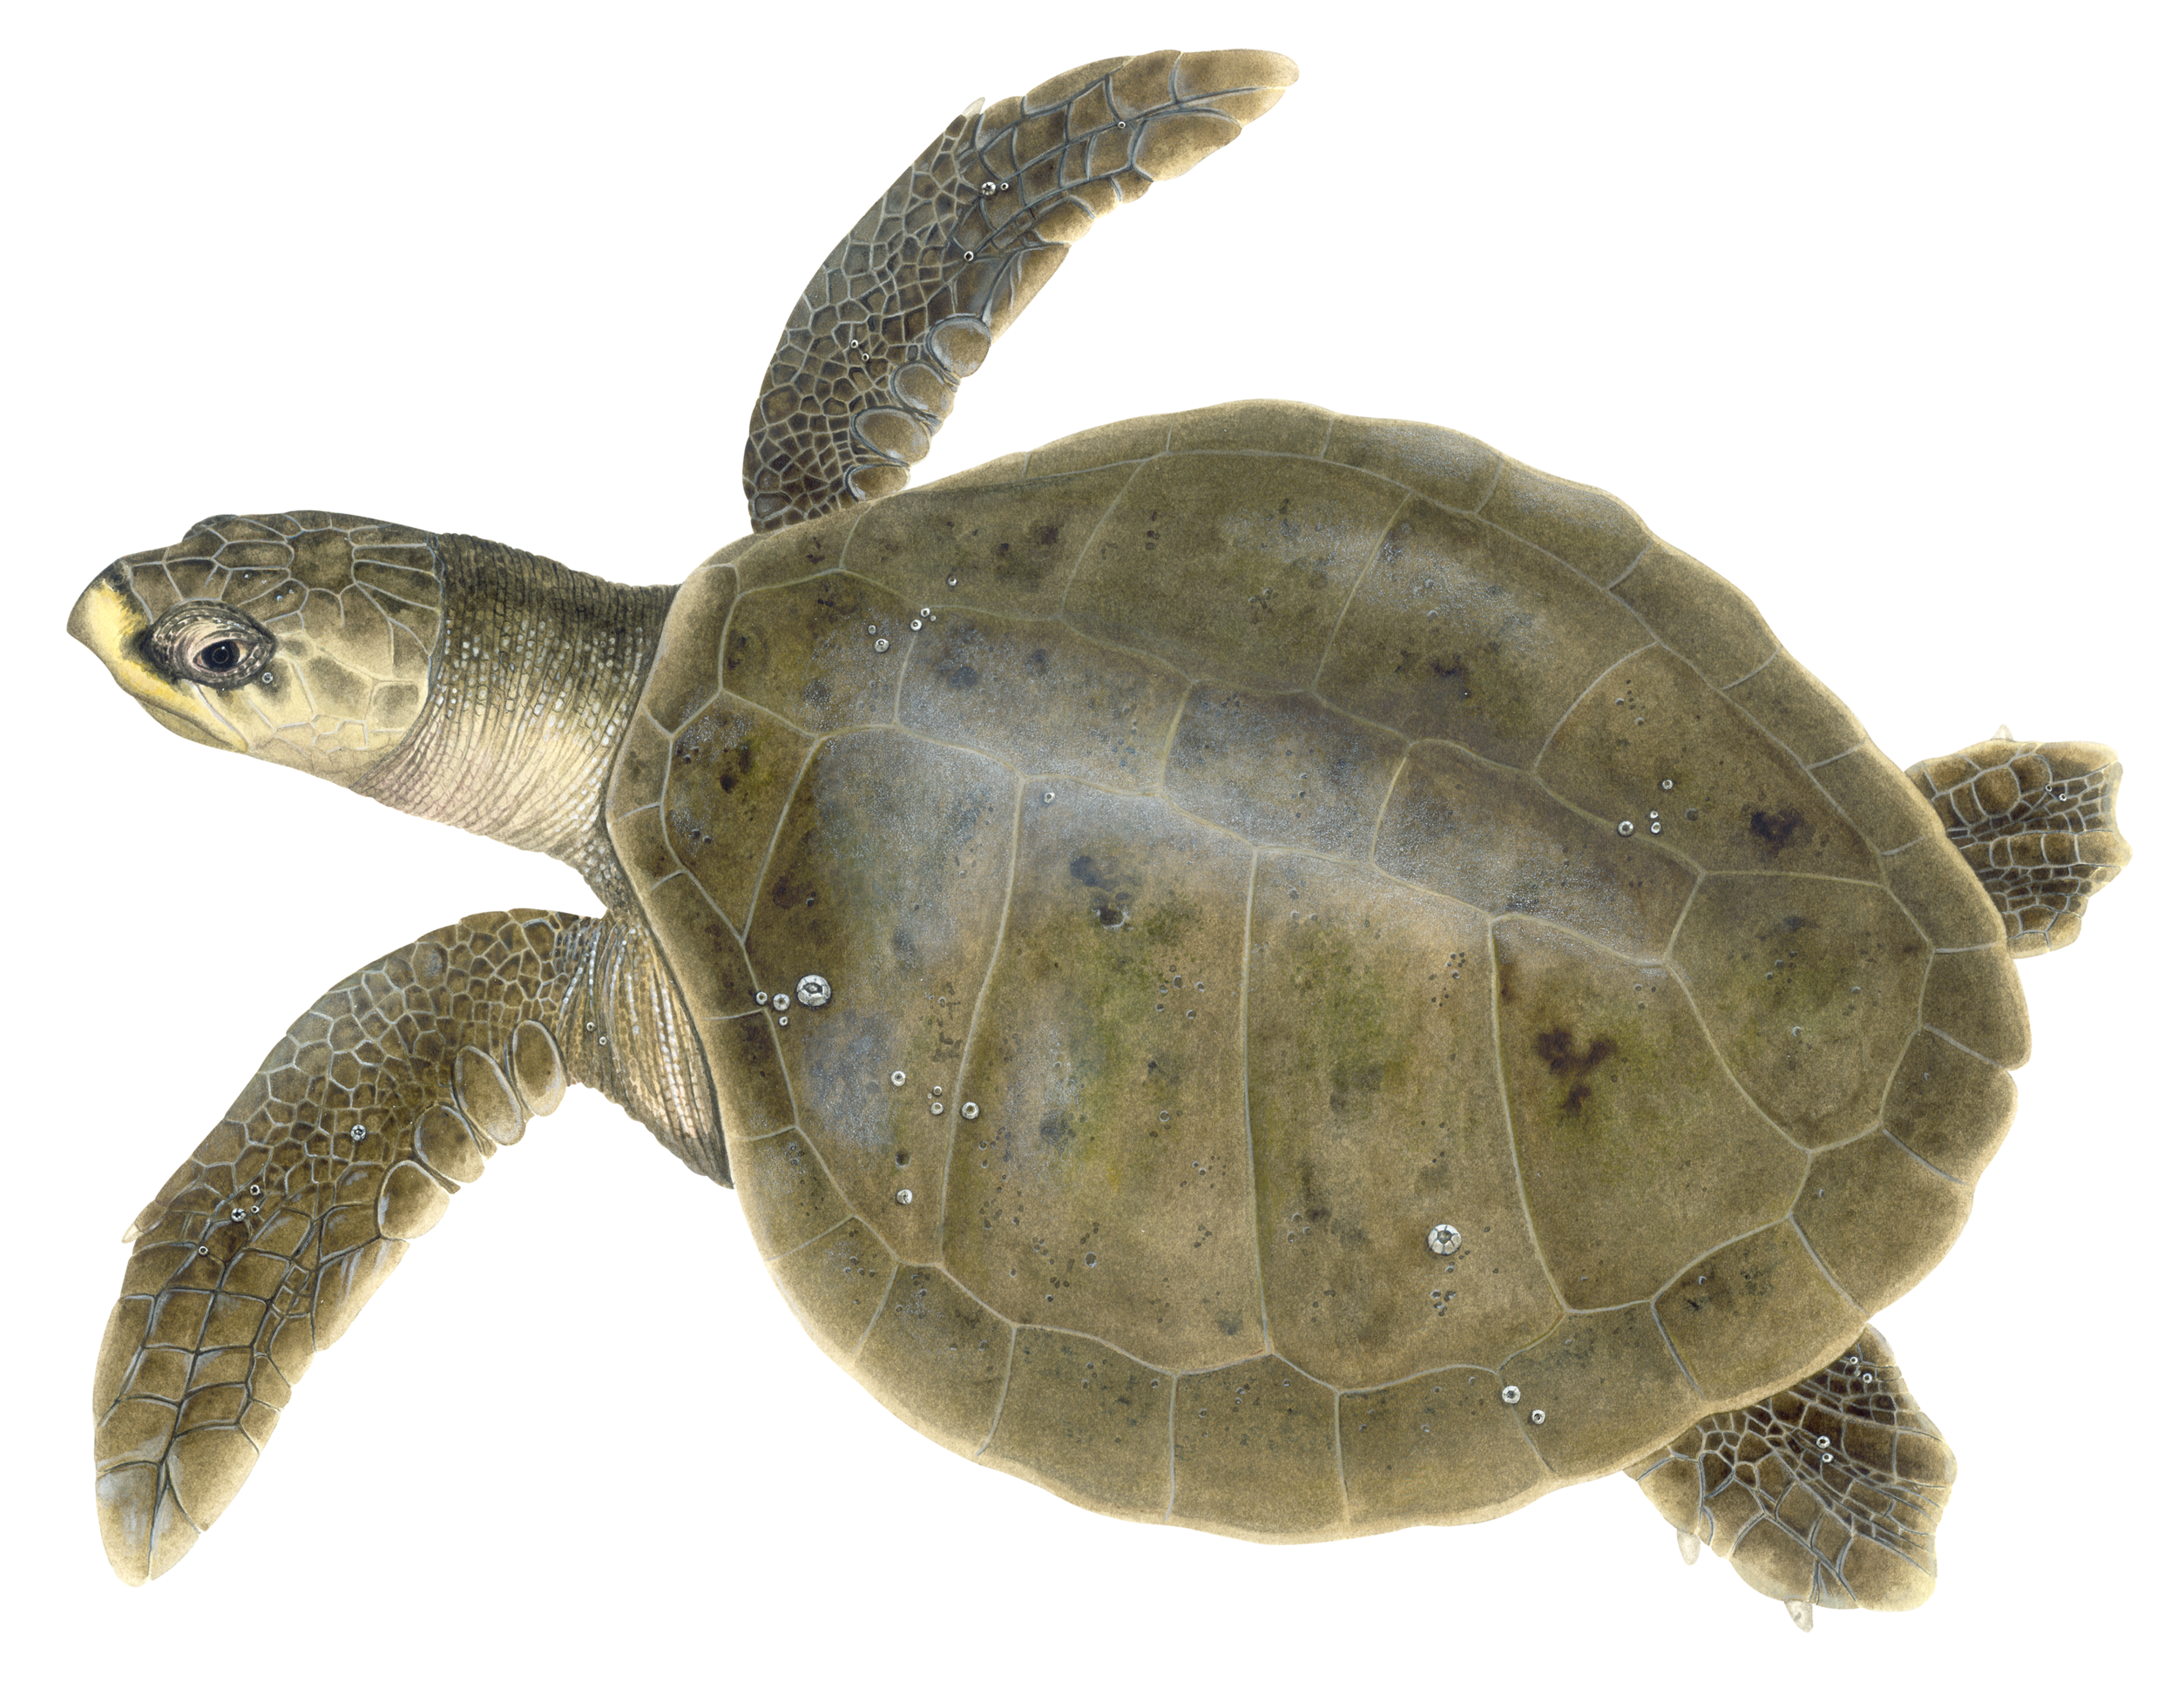 Illustration of a Kemp's Ridley Sea Turtle